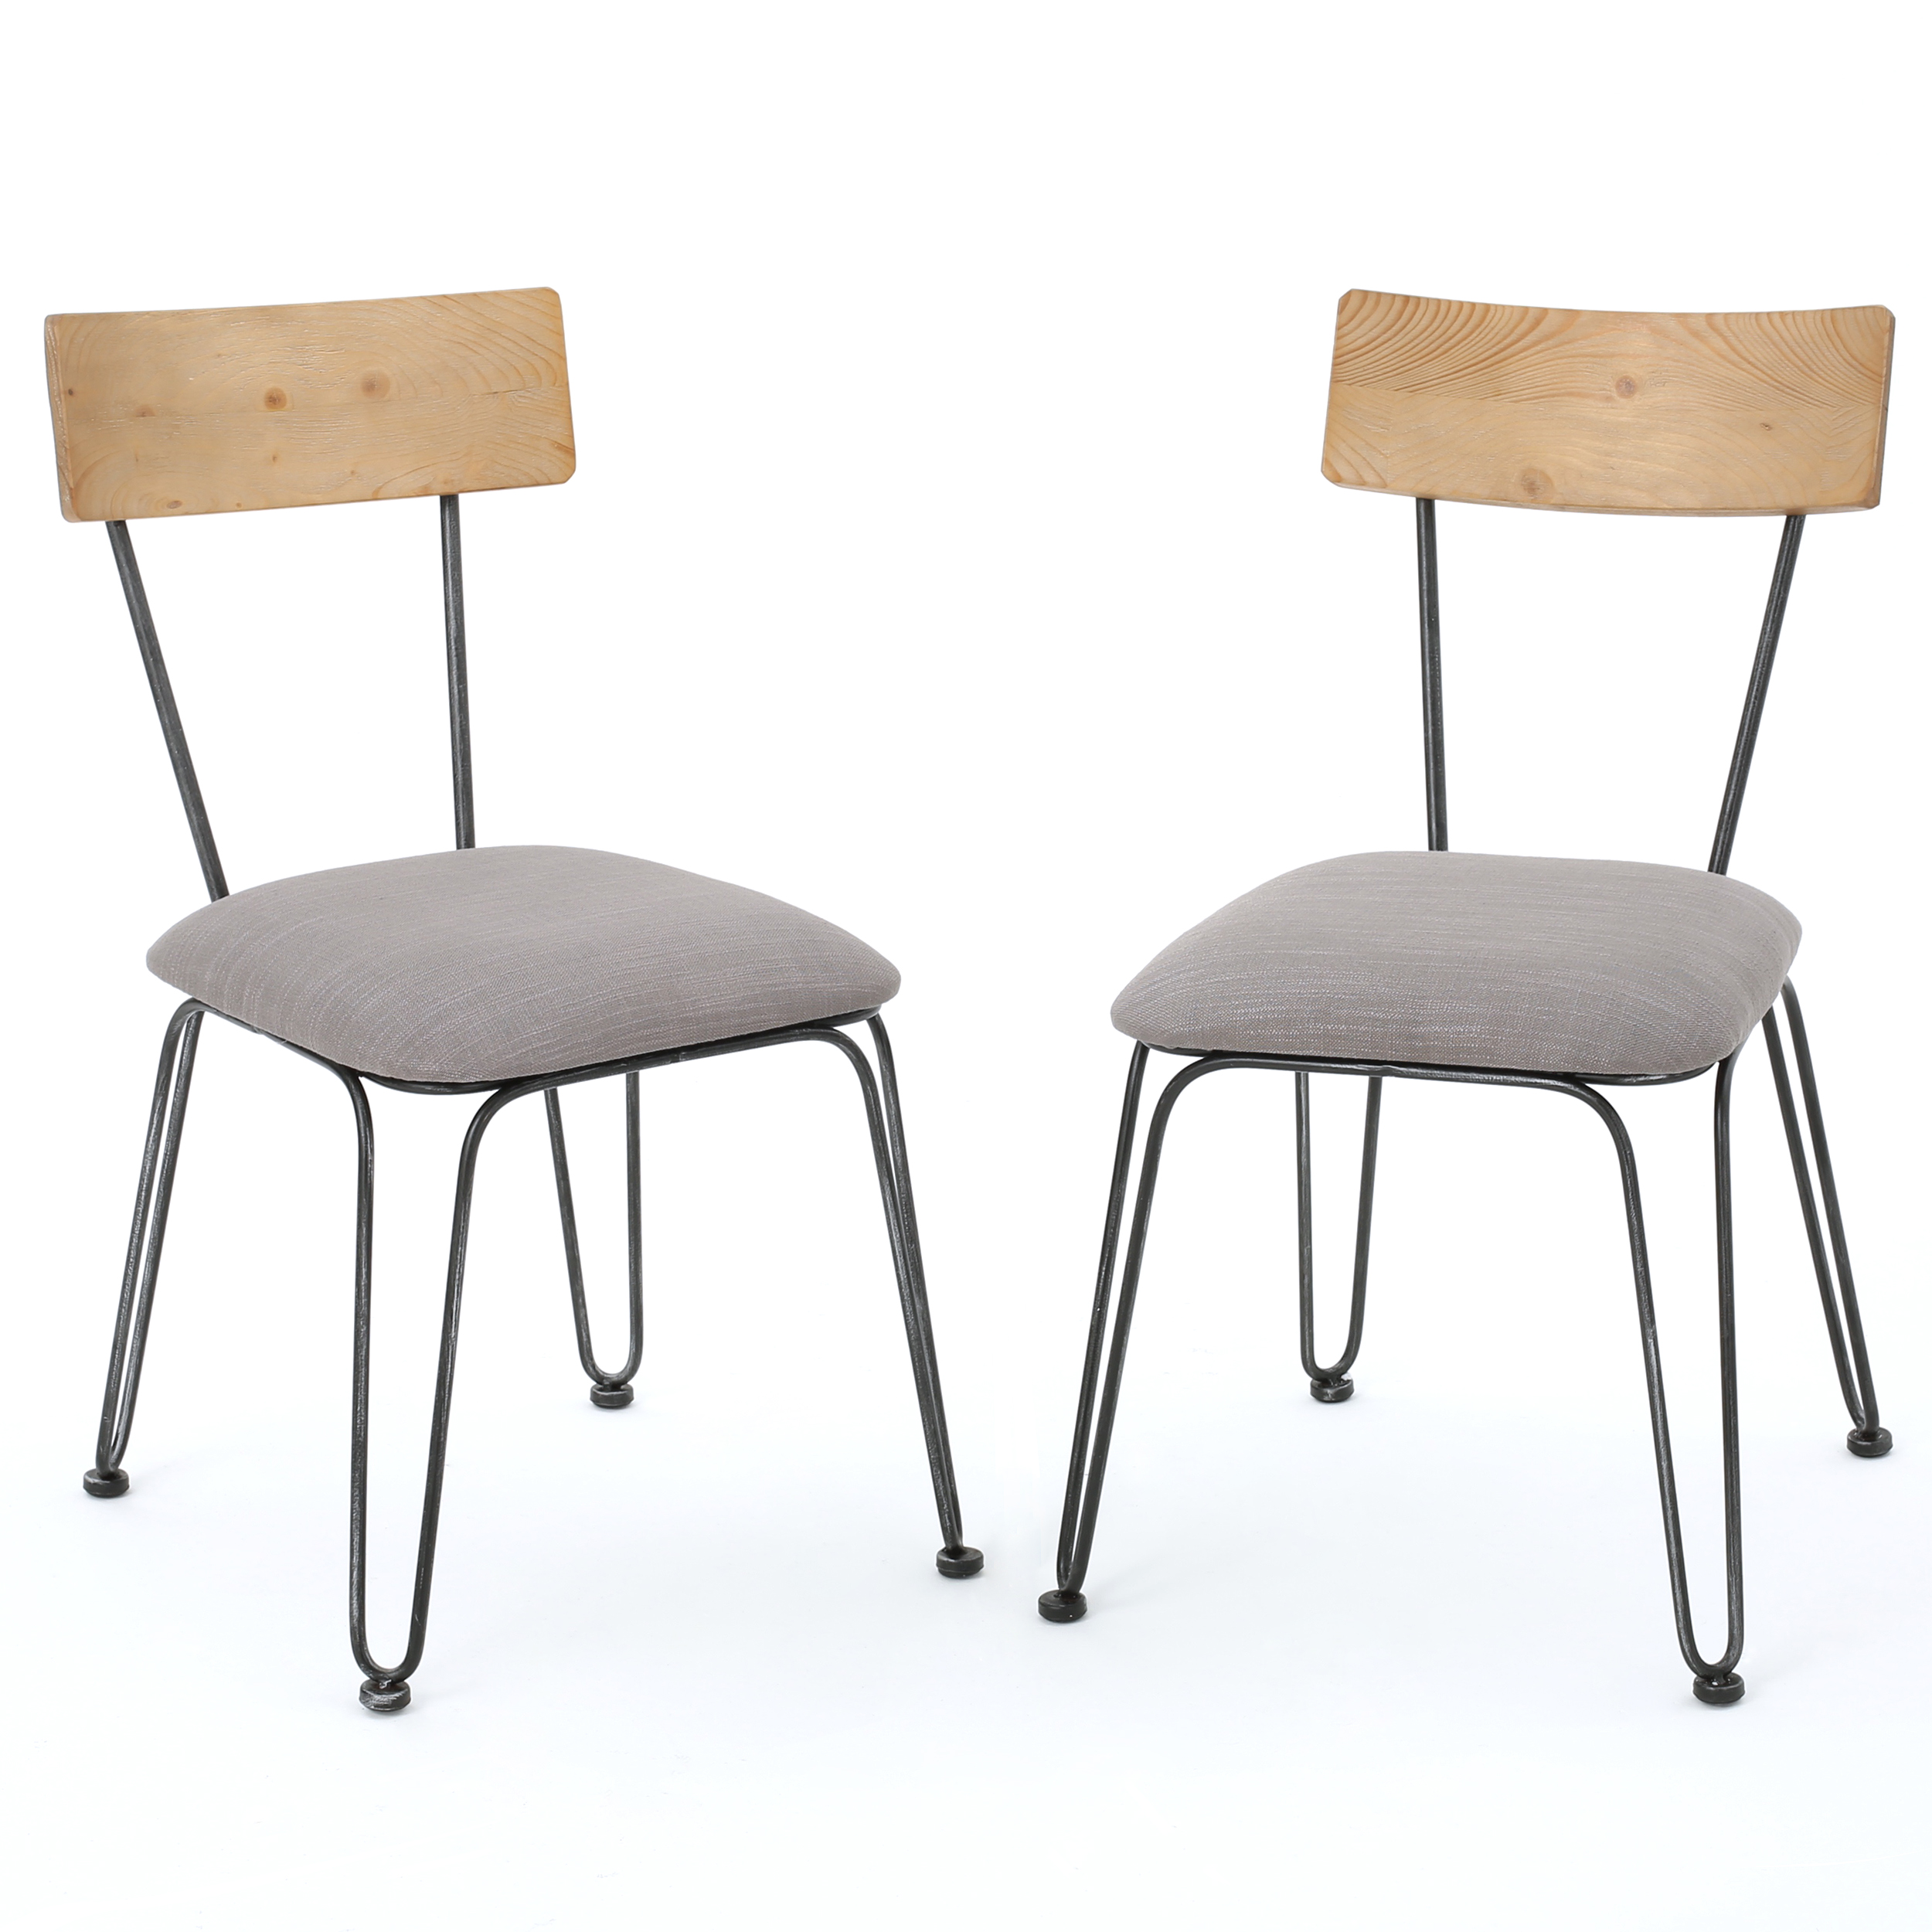 Poe Metal Chairs with Cushions, Set of 2, Black and Grey